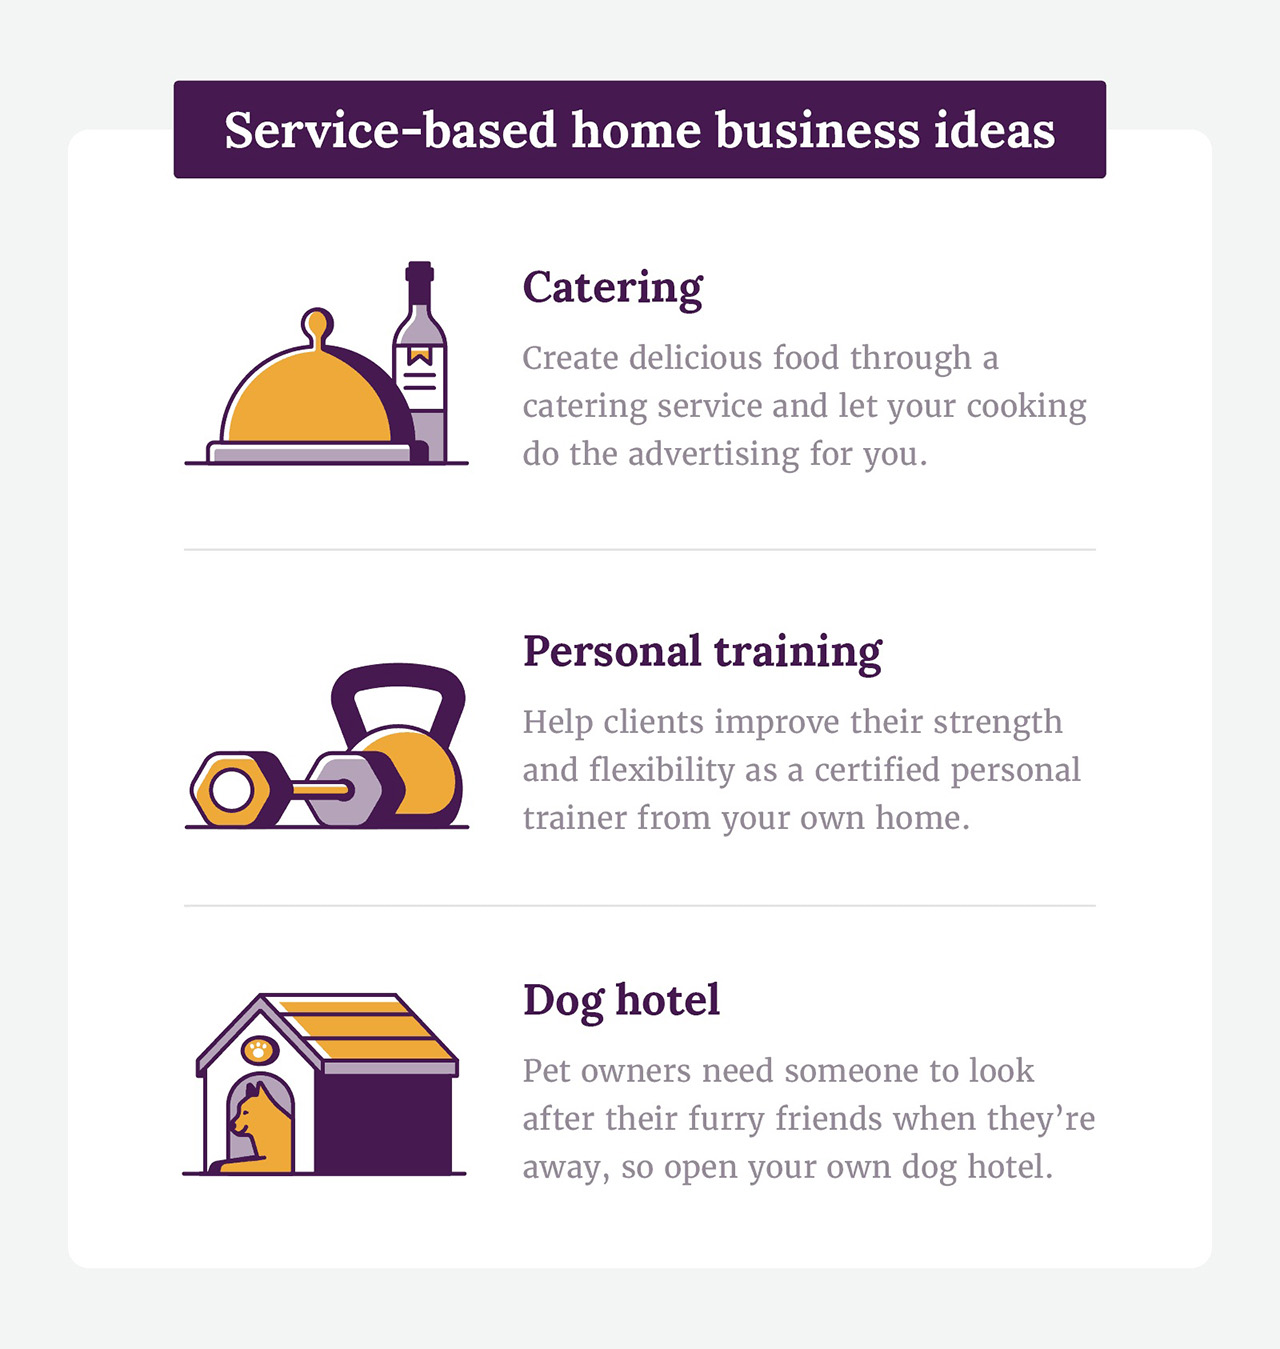 Service based home business ideas